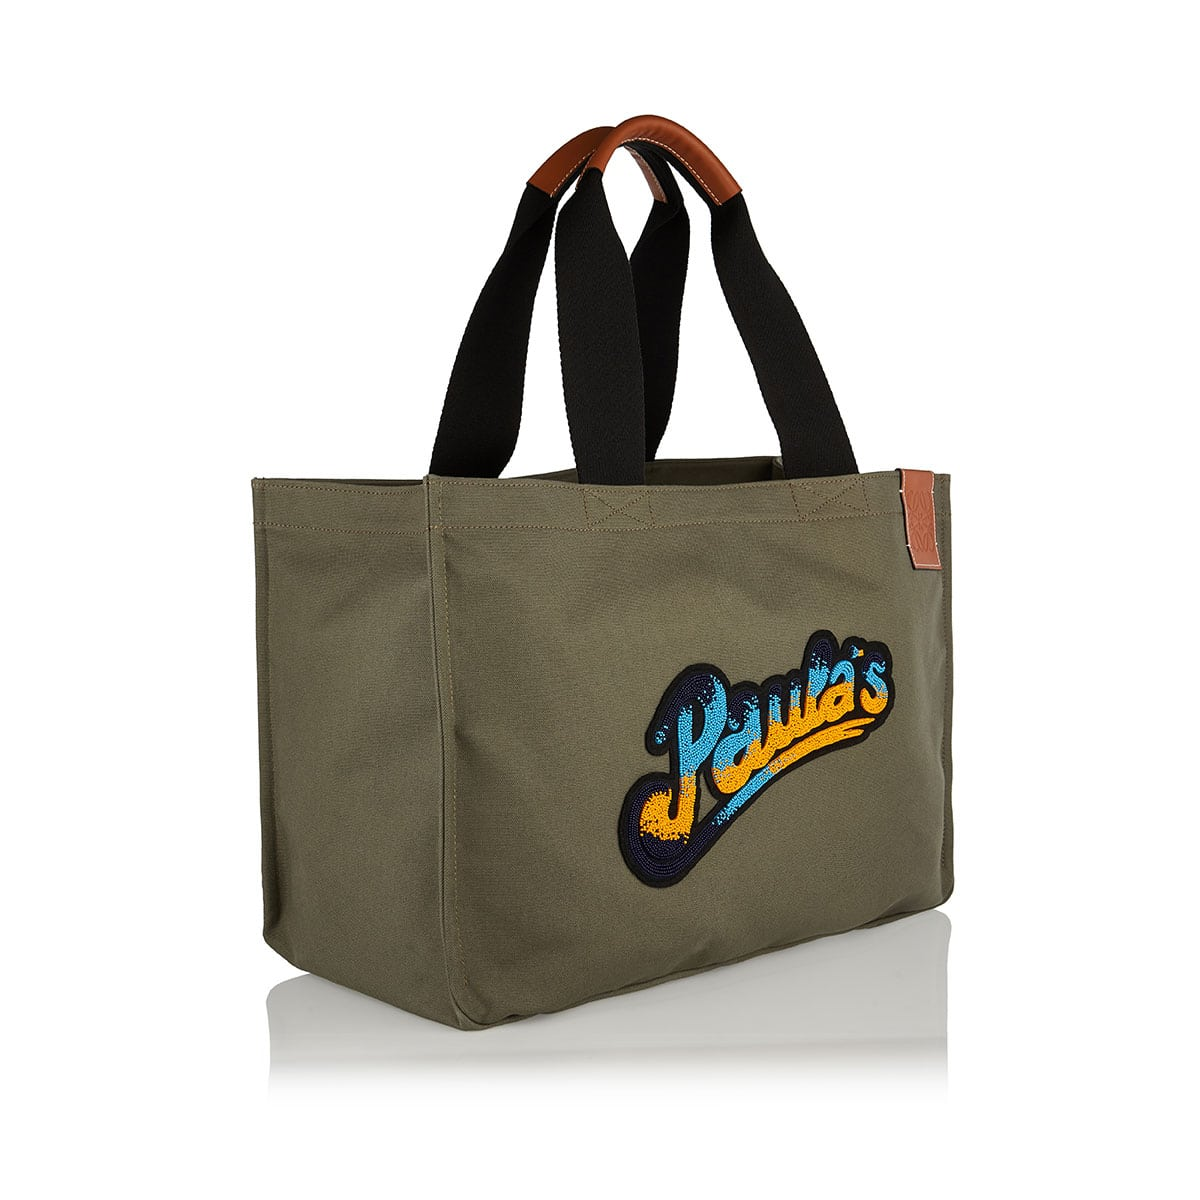 Large logo canvas tote